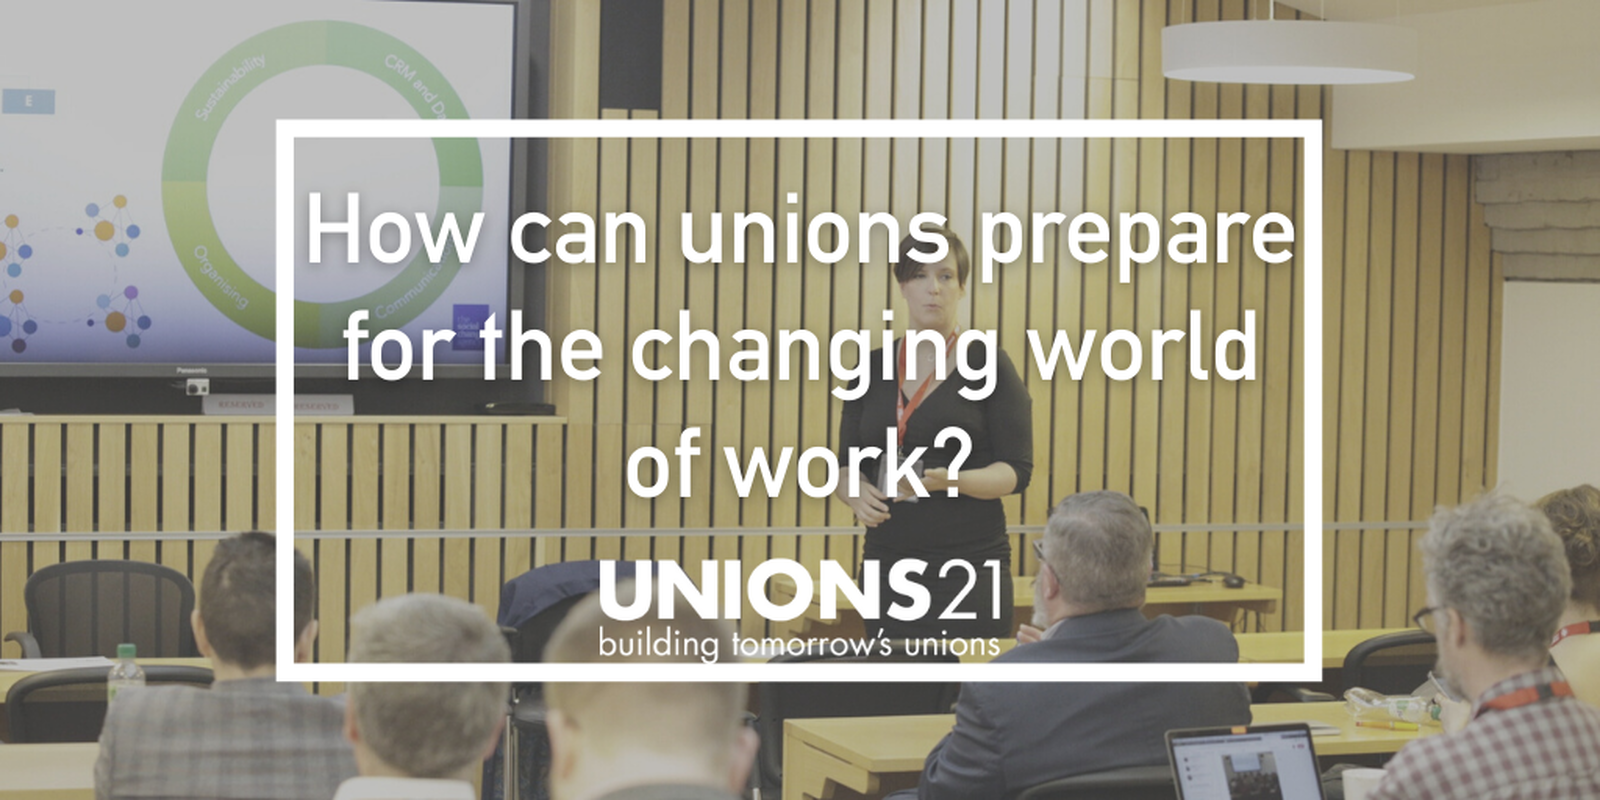 Unions 21 Webinar 'How can unions prepare for the changing world of work?'